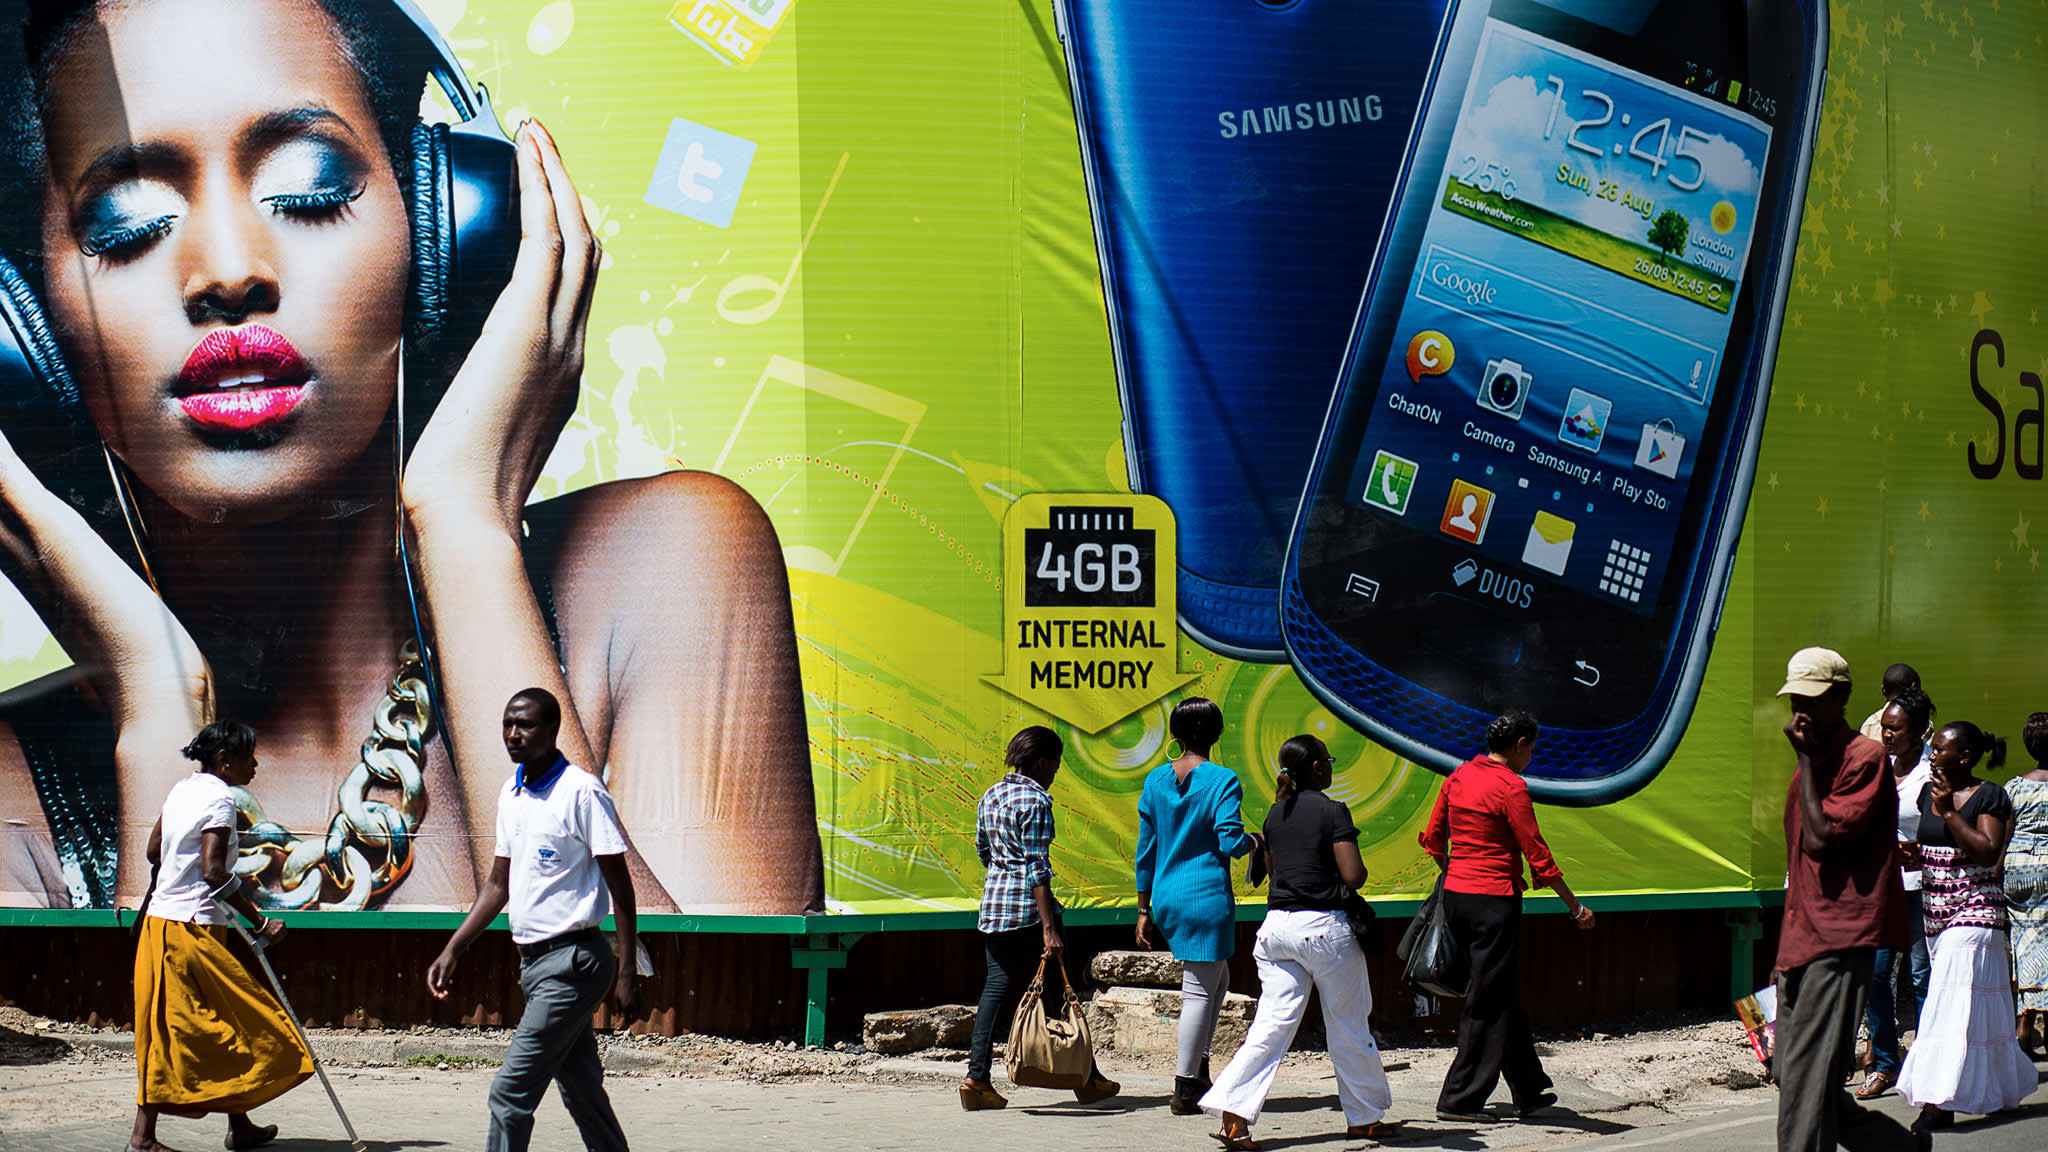 'One size fits all' marketing by global companies fails in Africa | Financial Times